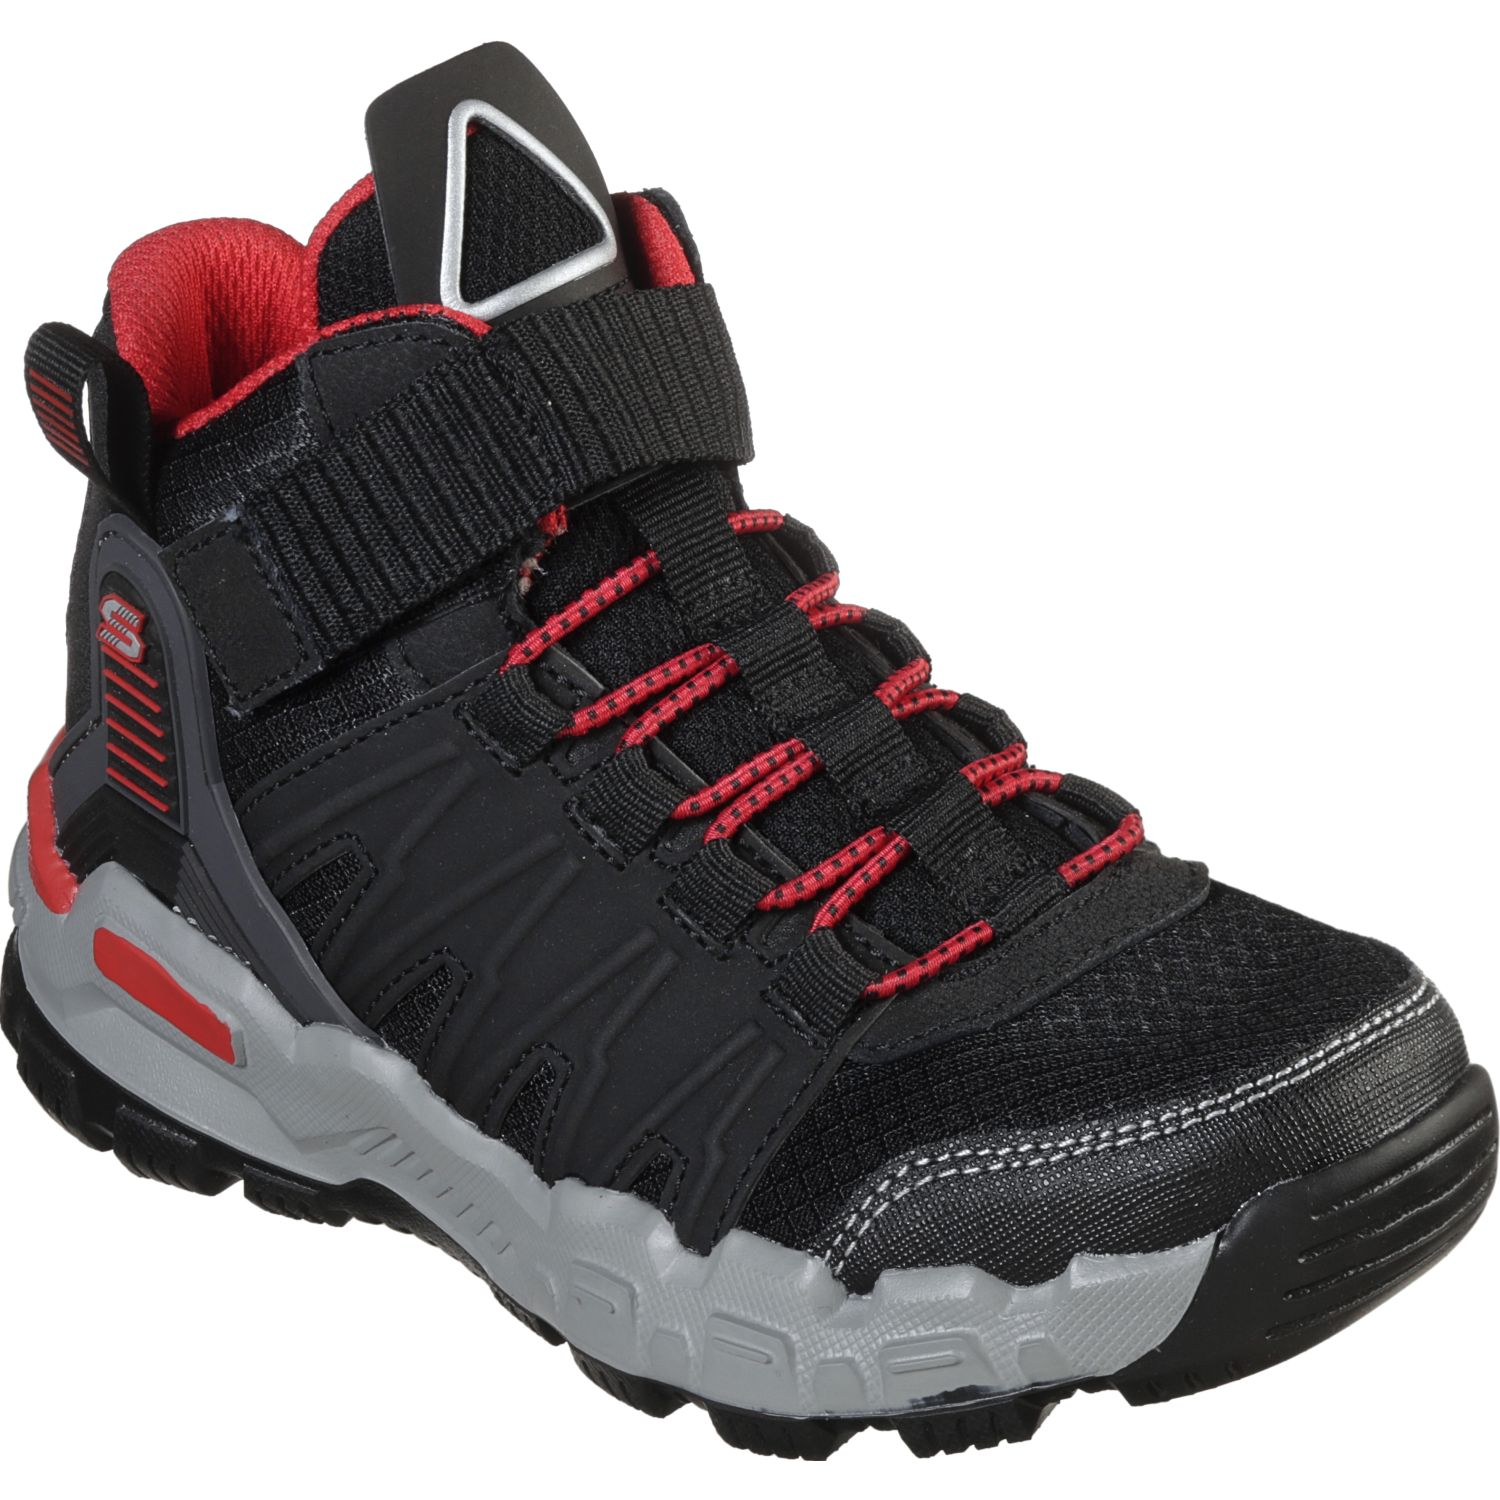 Skechers adventure track - geo quest Negro / rojo Walking